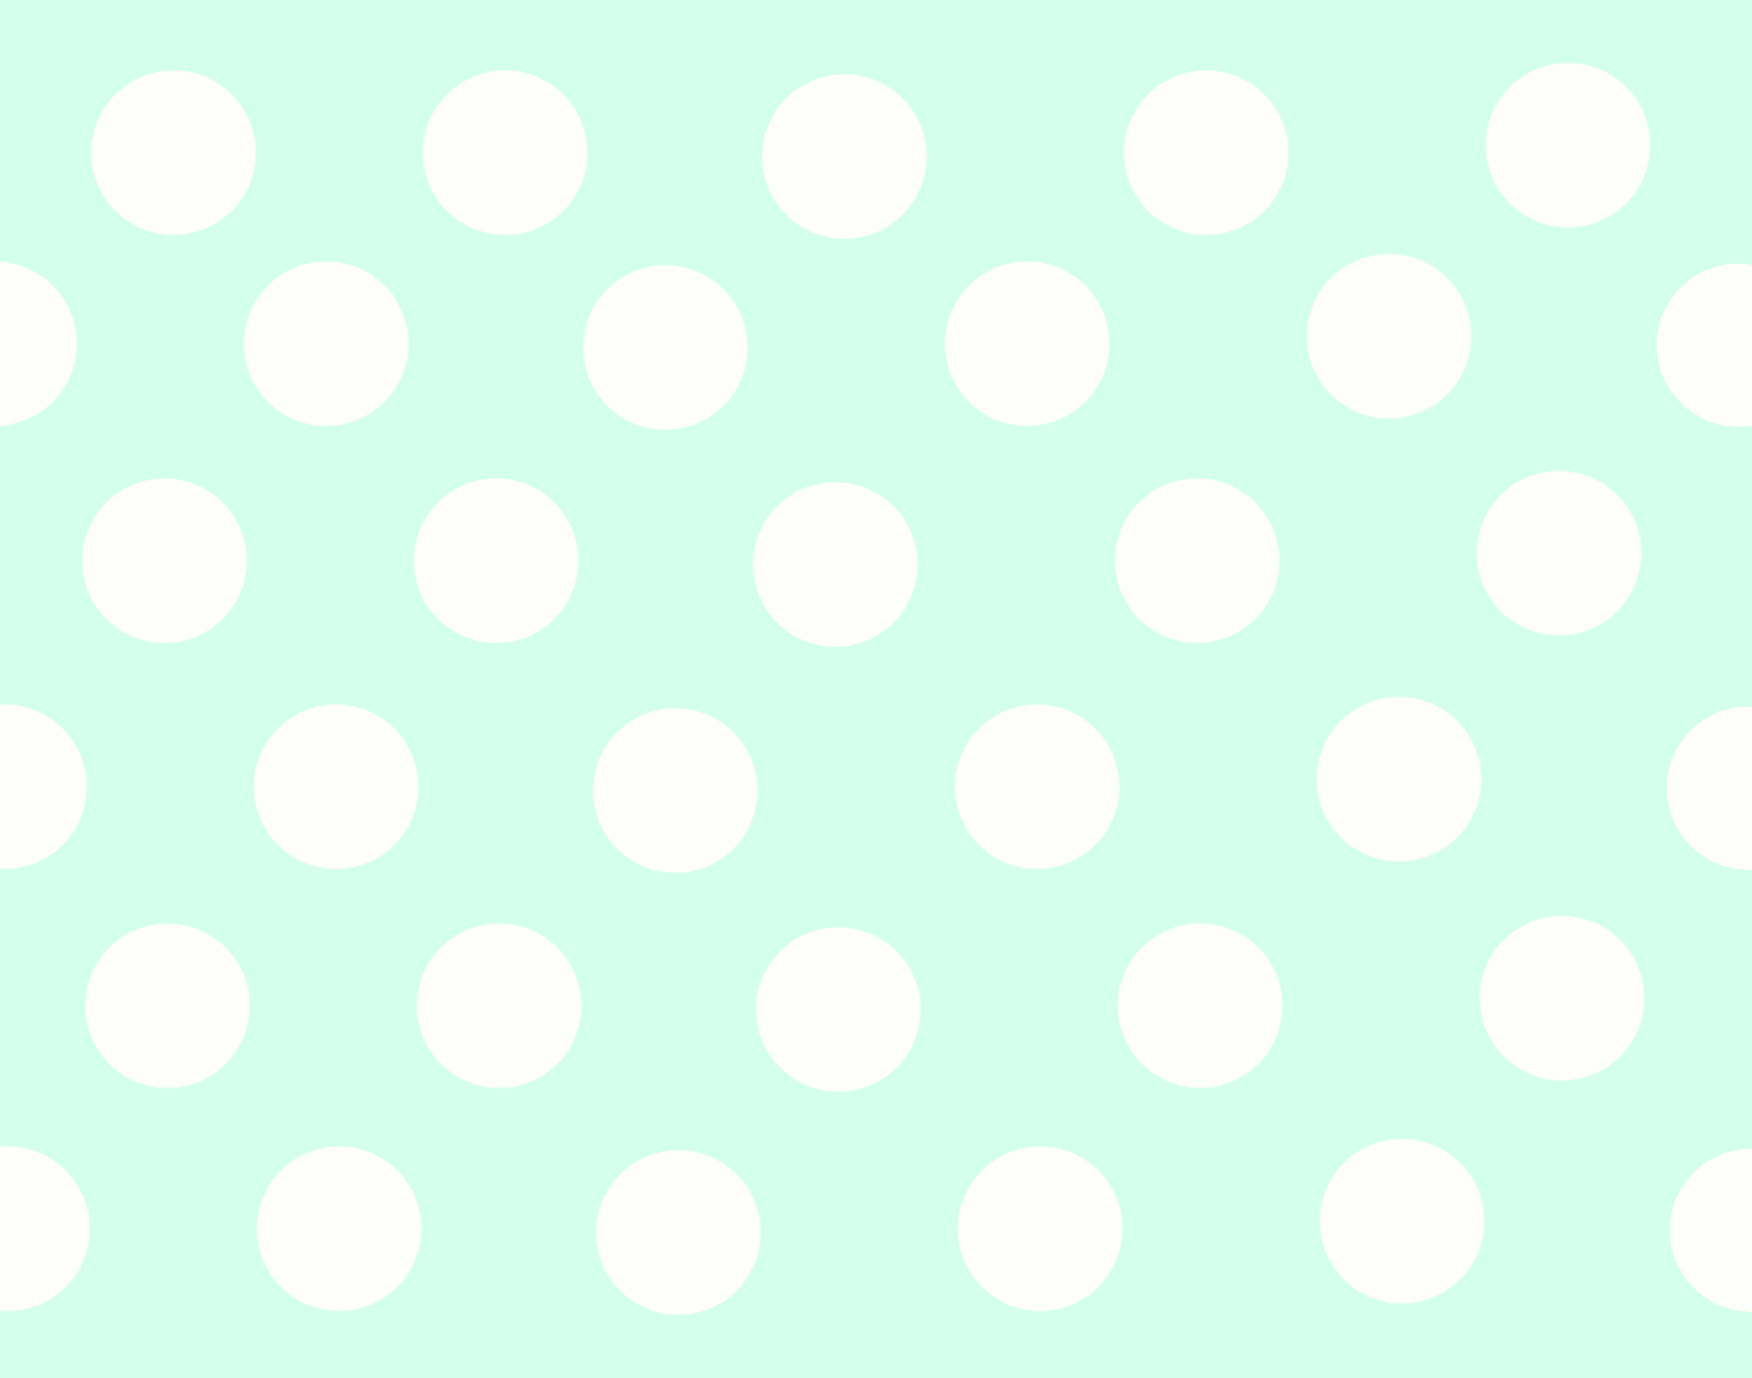 Hd Wallpapers The Gallery For Gt Pink Polka Dot Number 2